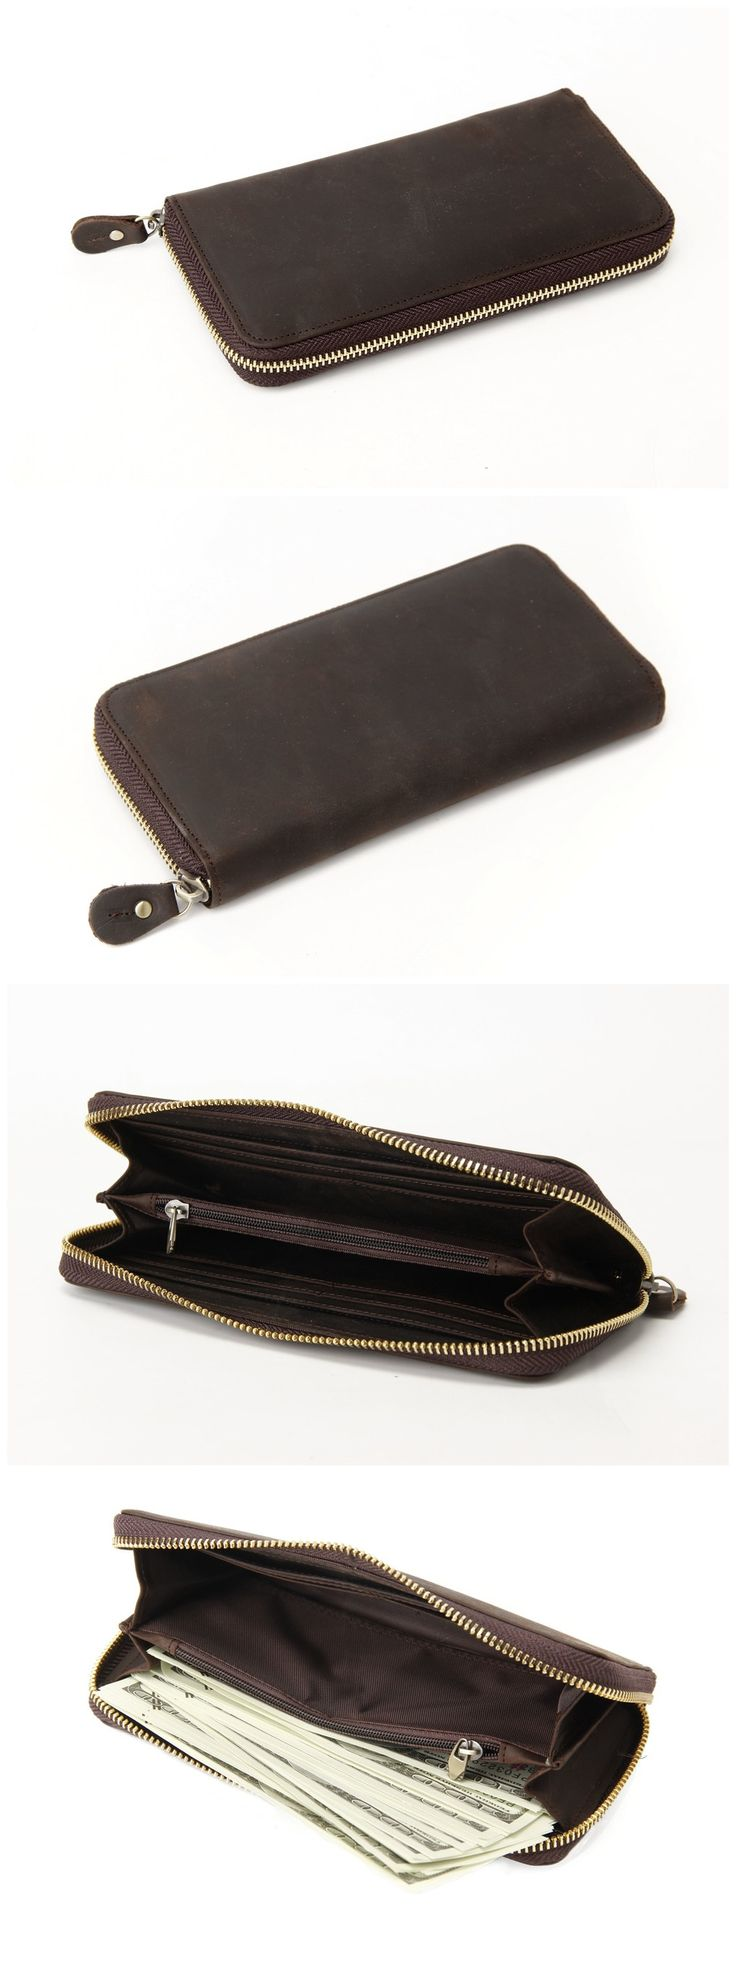 genuine leather wallet,Long Wallet,Money Bag